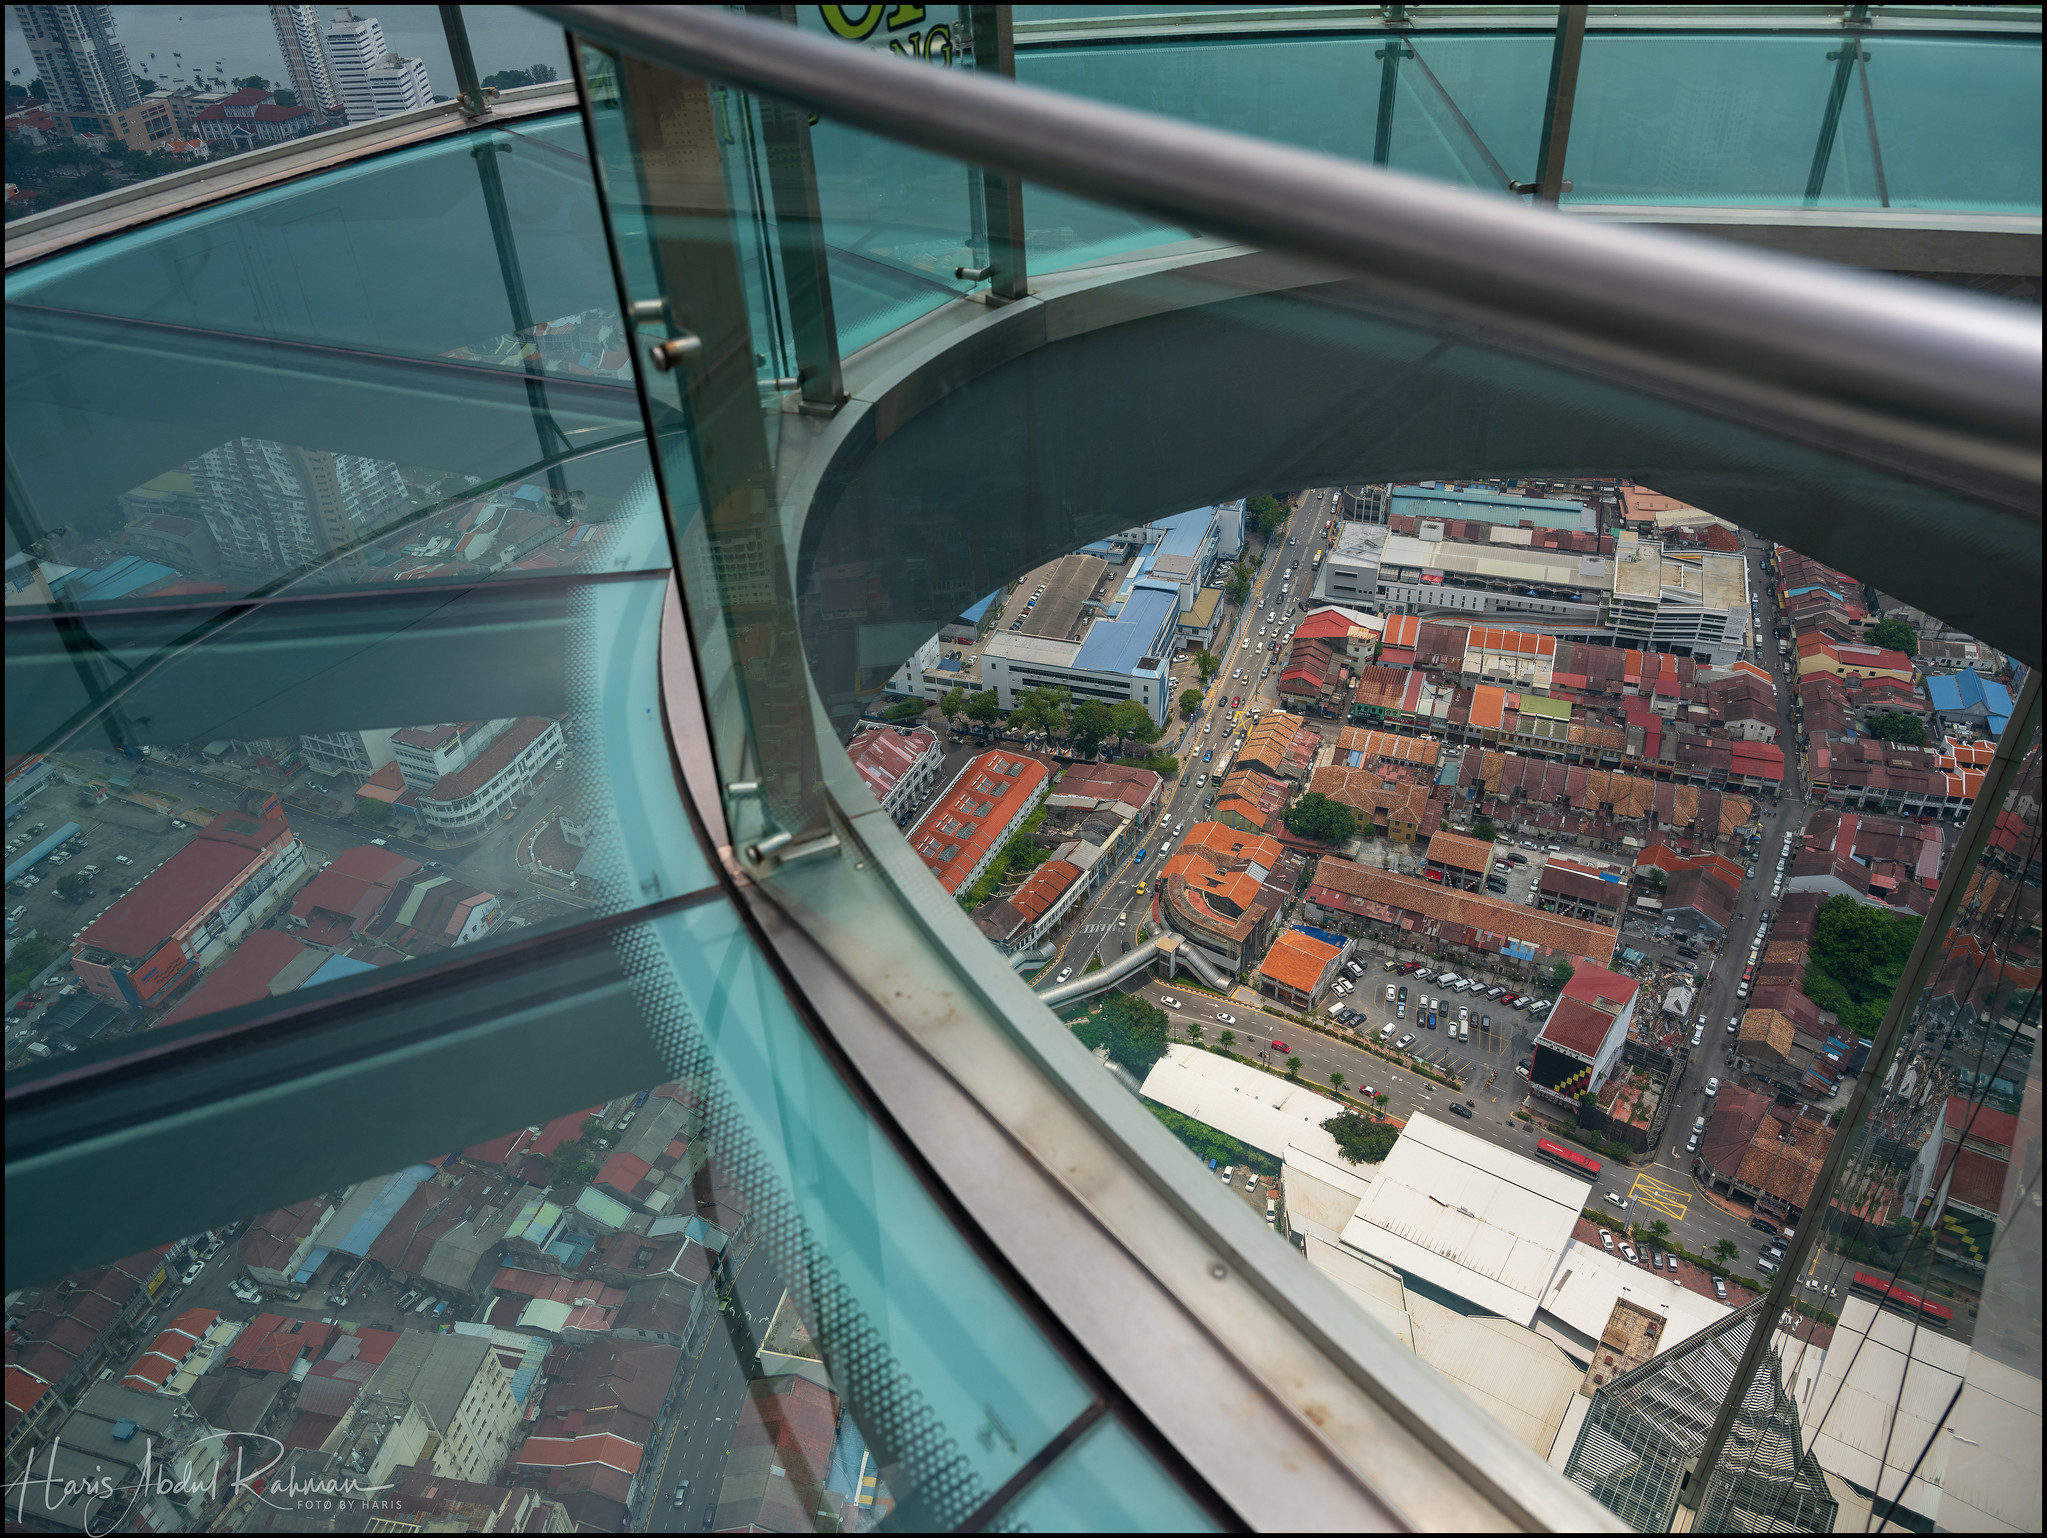 Jetting out into a glass platform